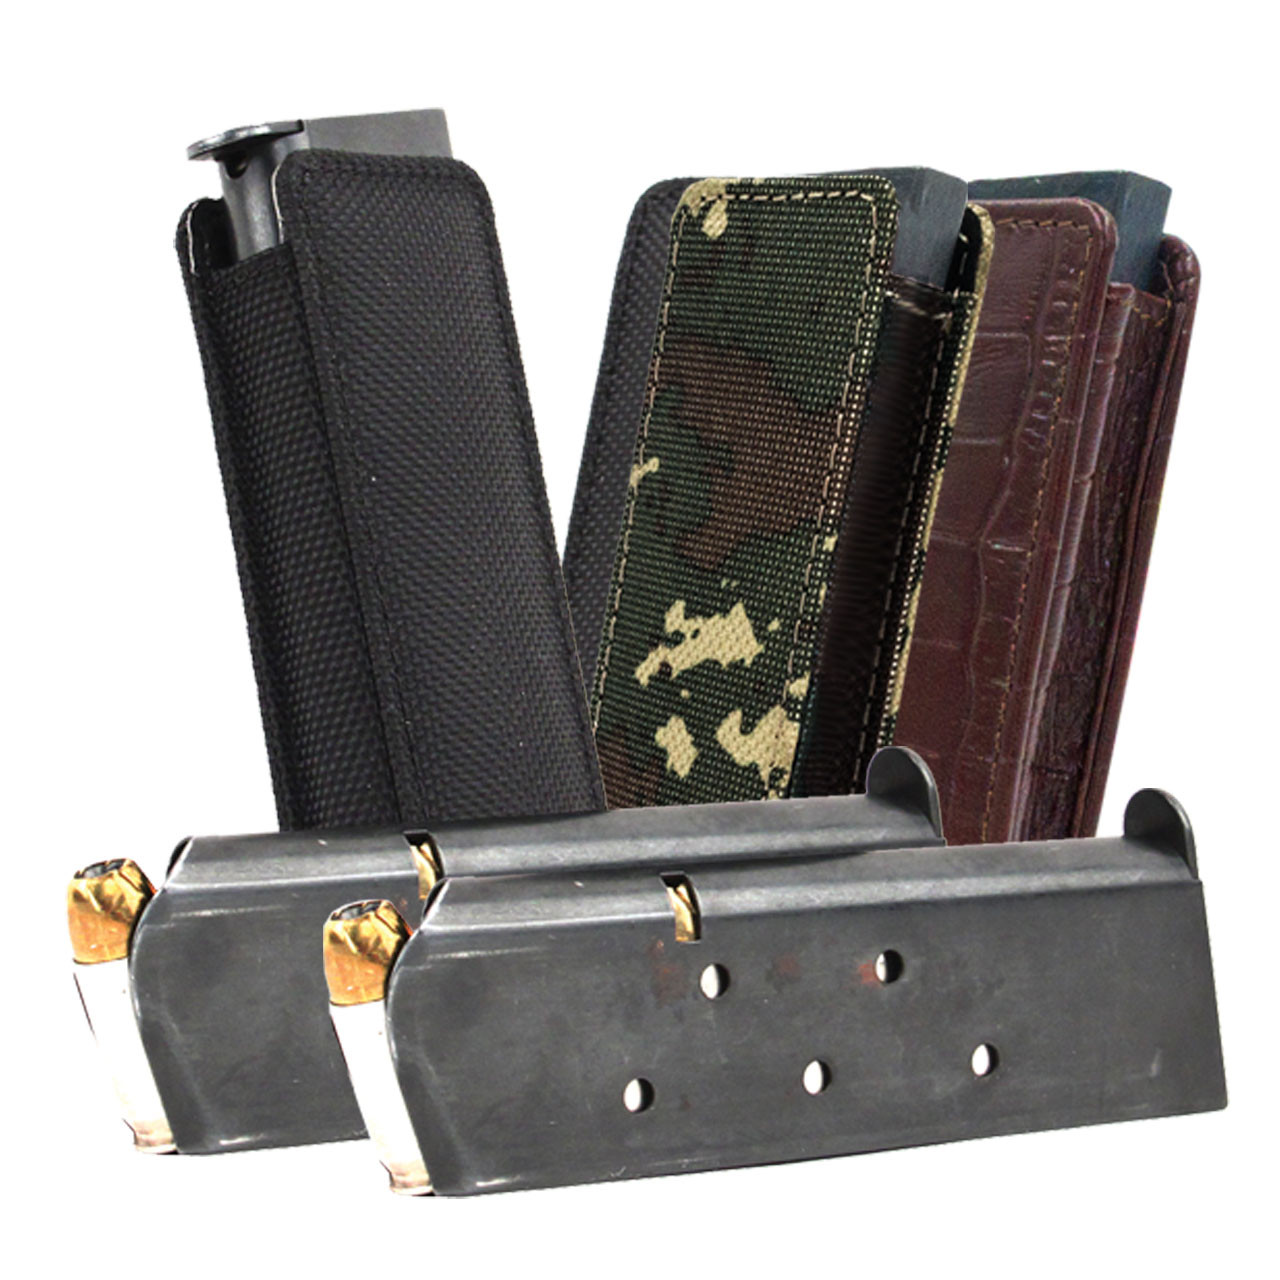 9mm Magazine Pocket Protectors